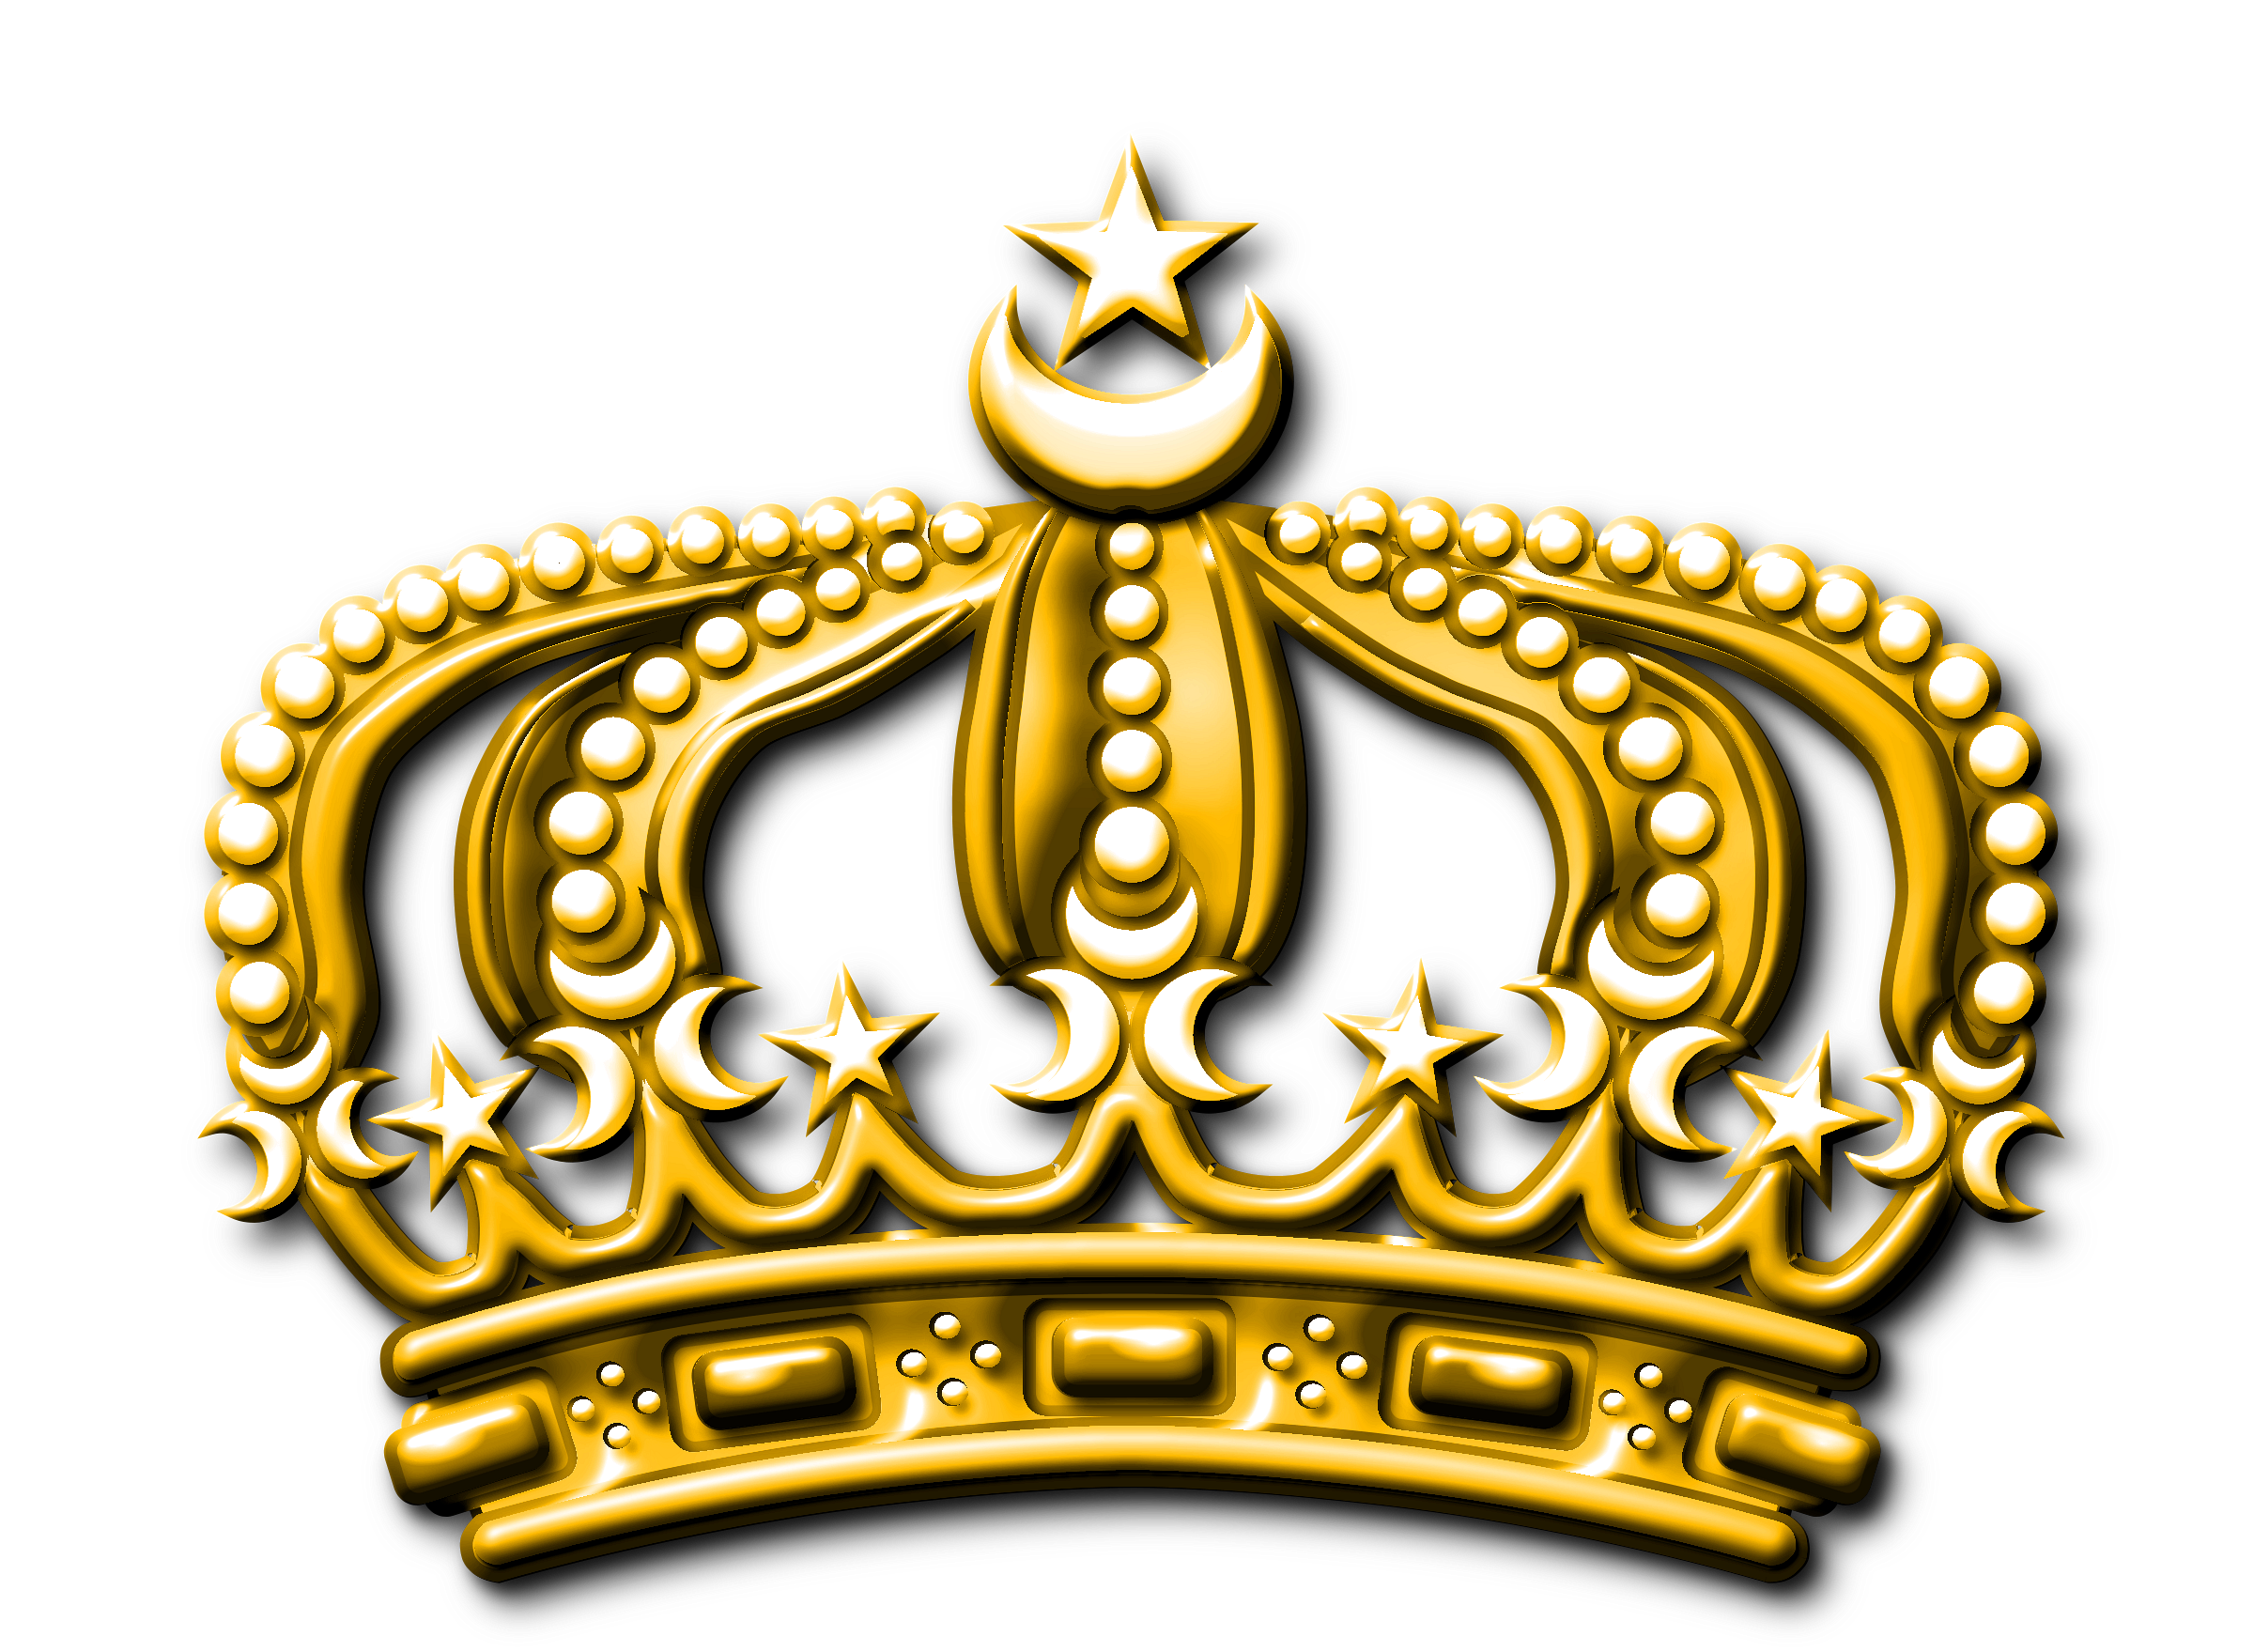 Royal queen crown clipart svg library stock Gold Crown Clipart - Clipart Kid svg library stock